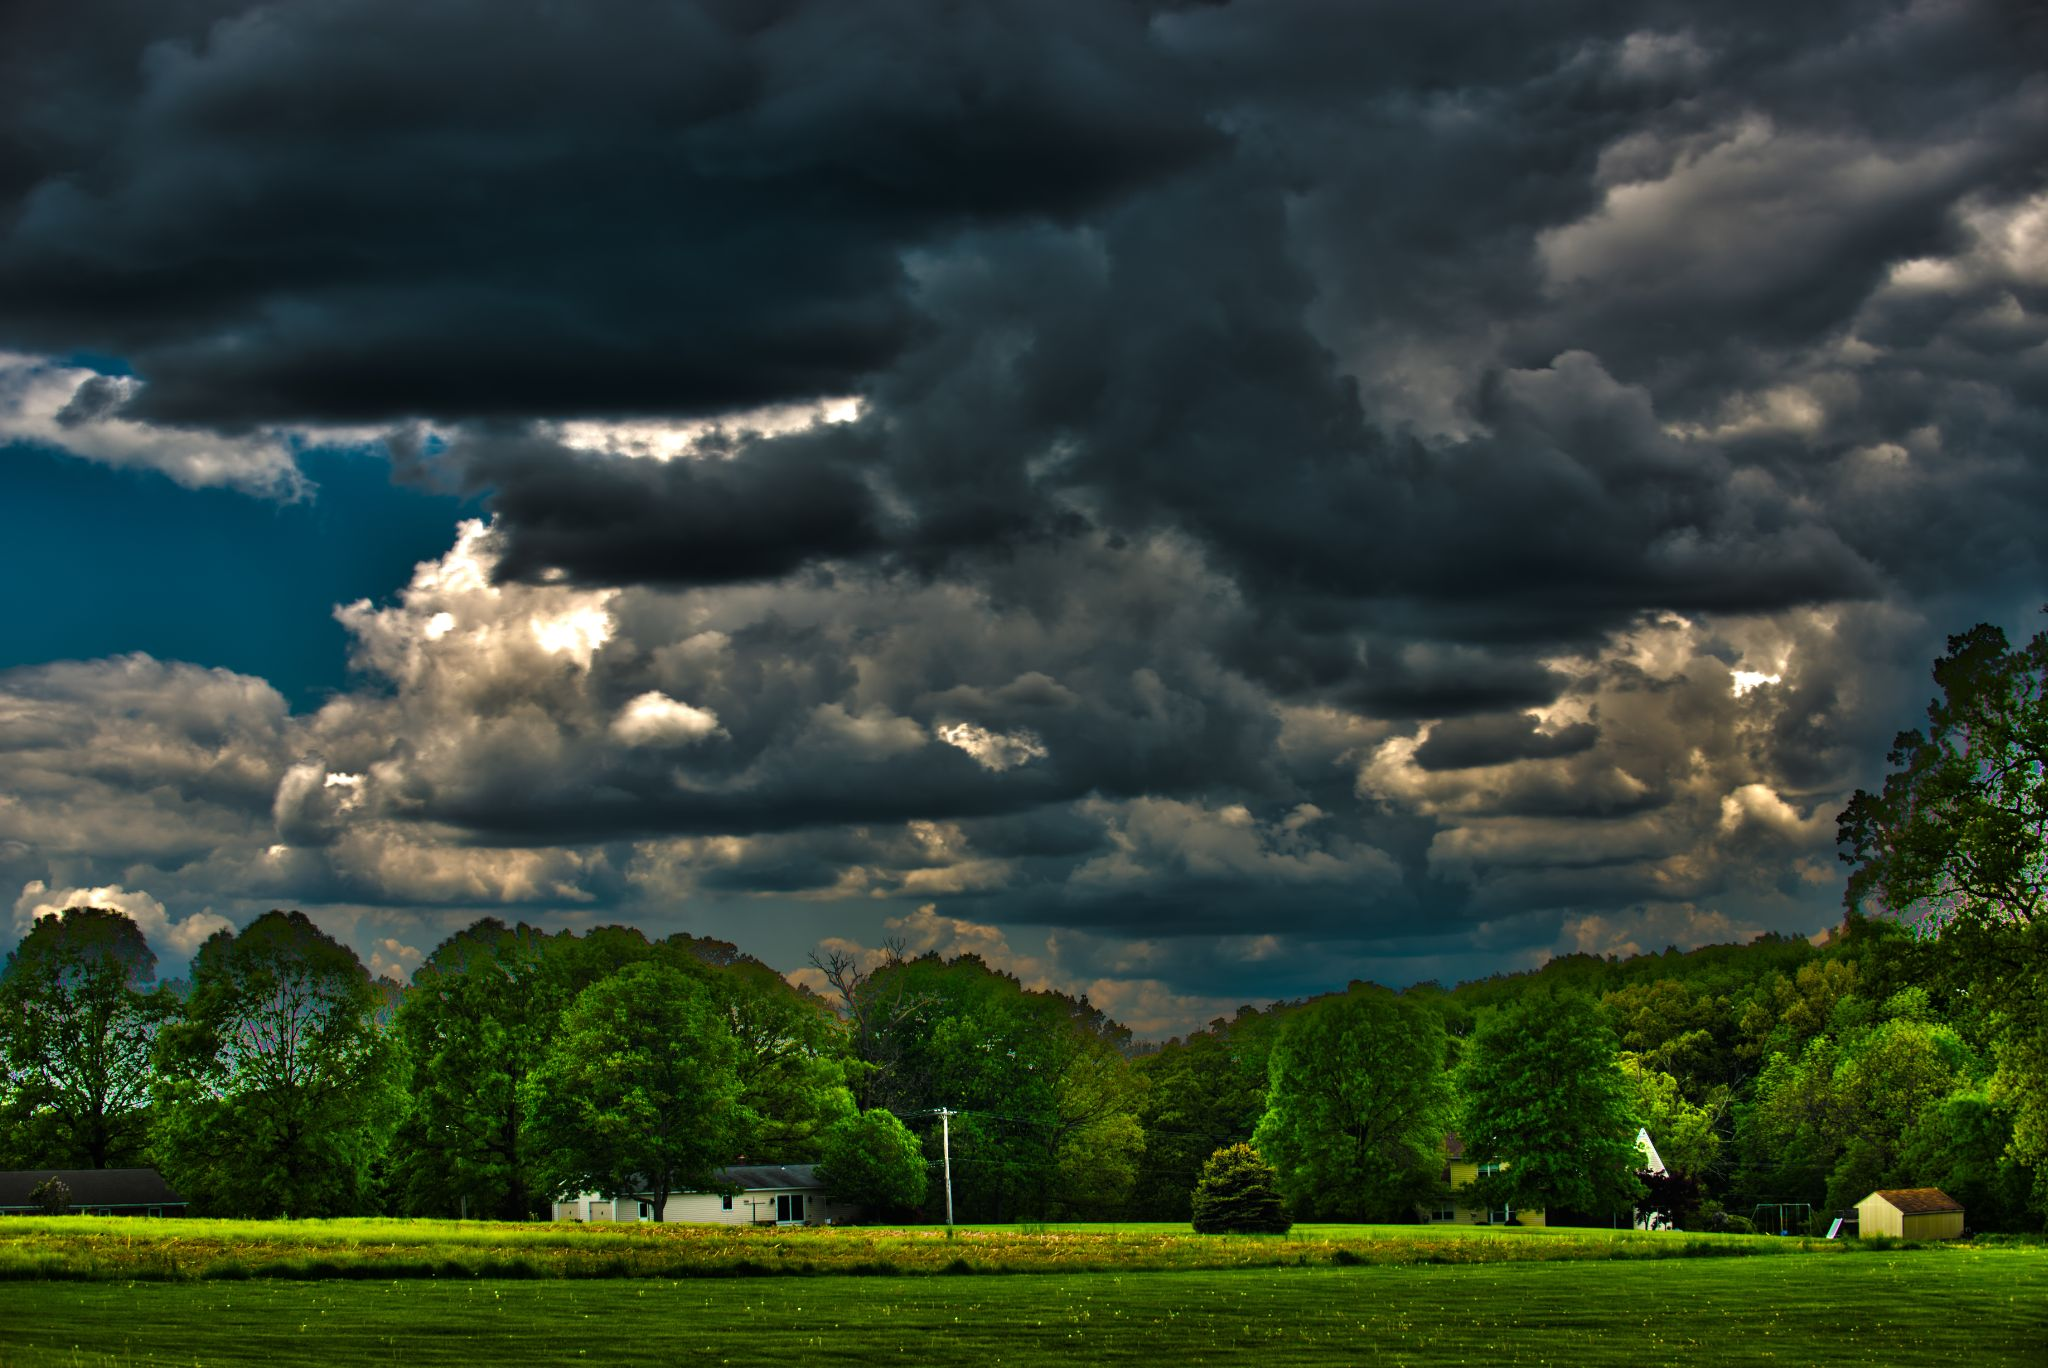 Field-HDR by Second-Glimpse Photography